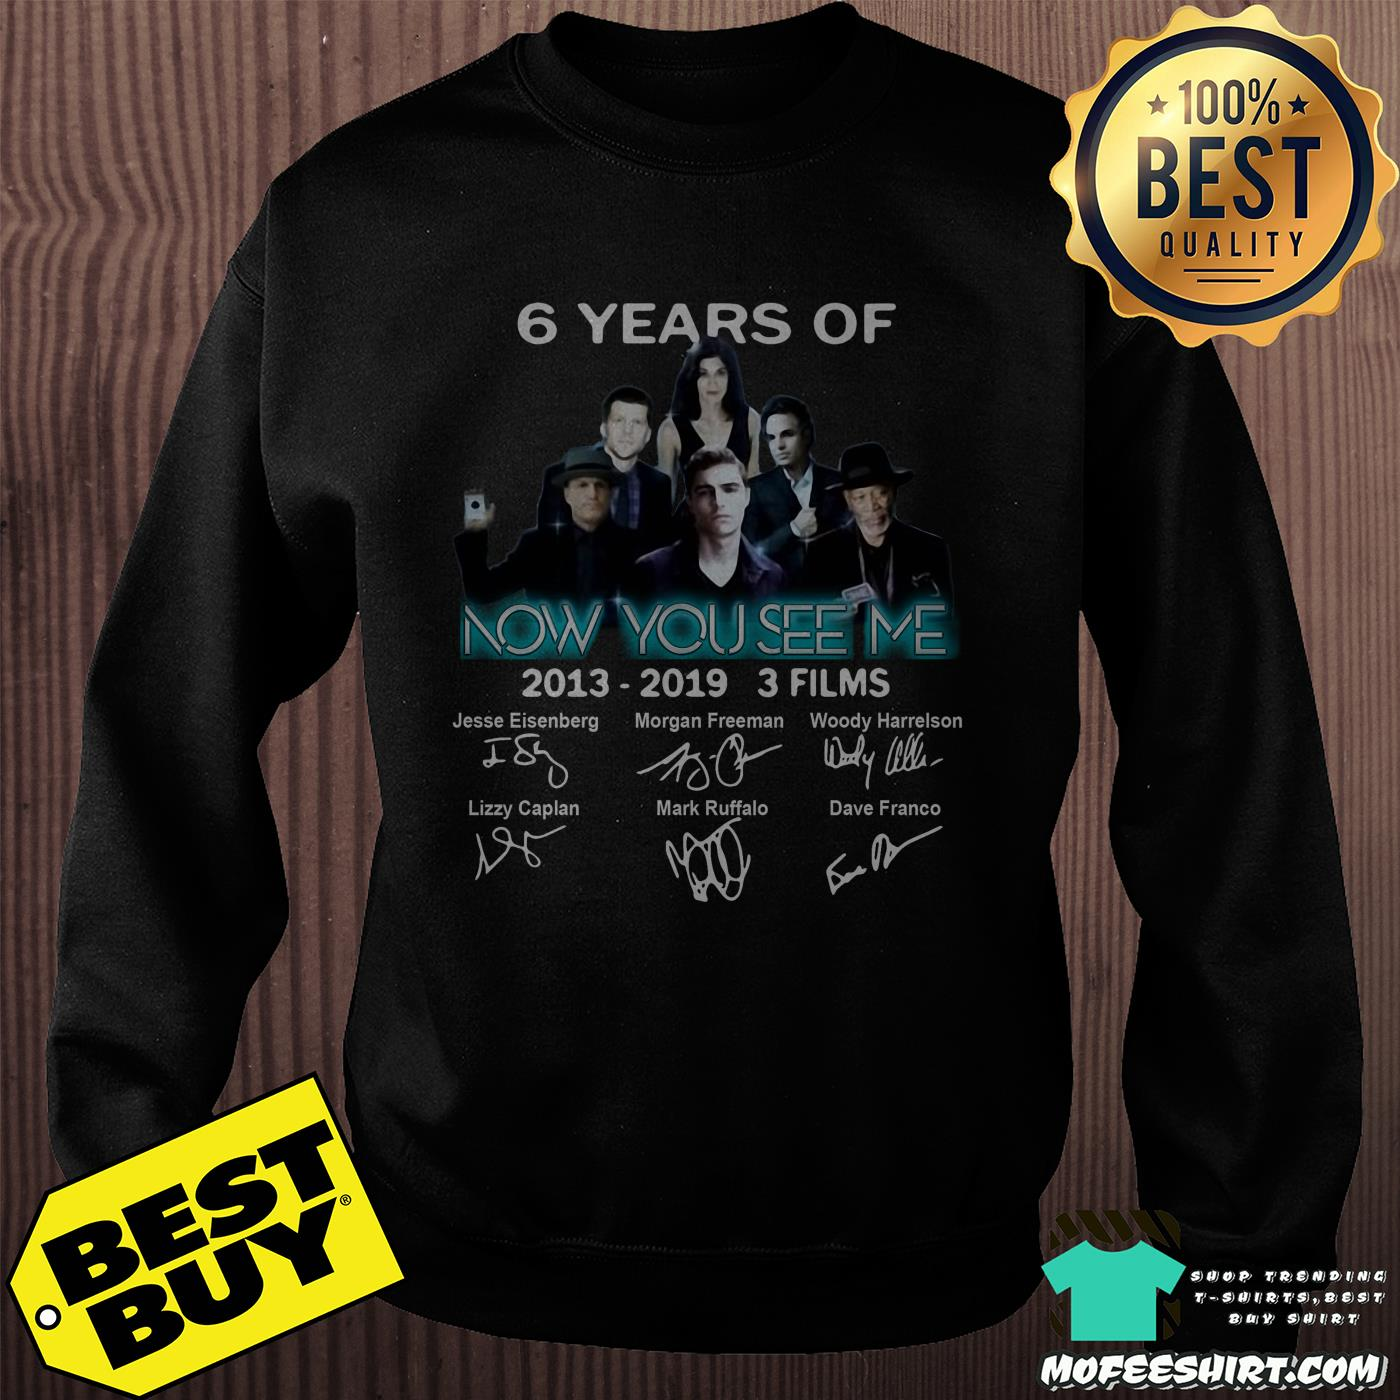 6 years of now you see me 3 films 2013 2019 signatures sweashirt - 6 Years Of Now You See Me 3 Films 2013-2019 Signatures shirt